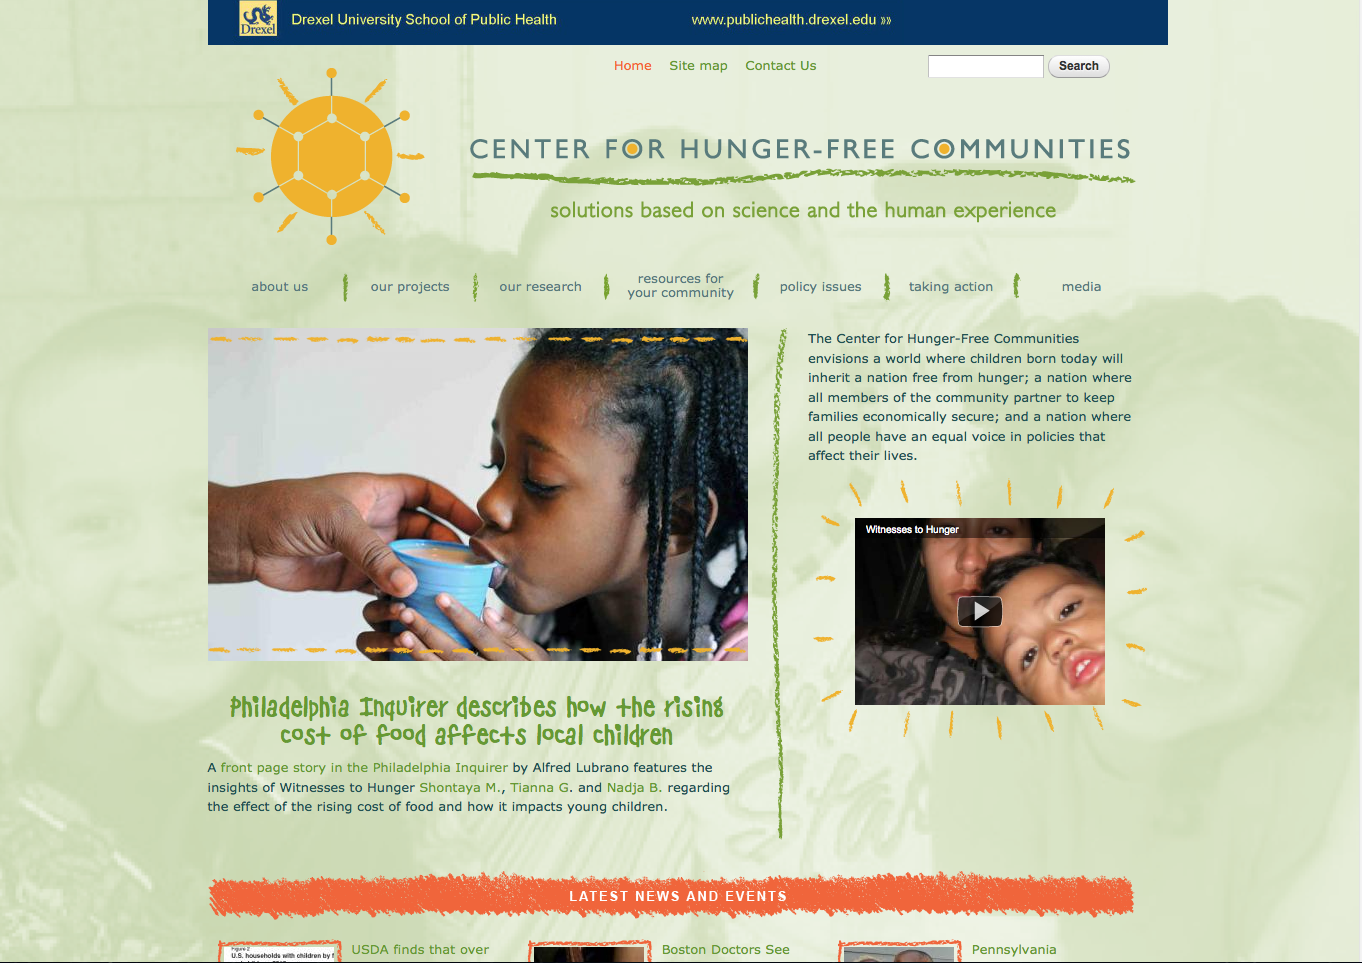 Center for Hunger Free Communities website